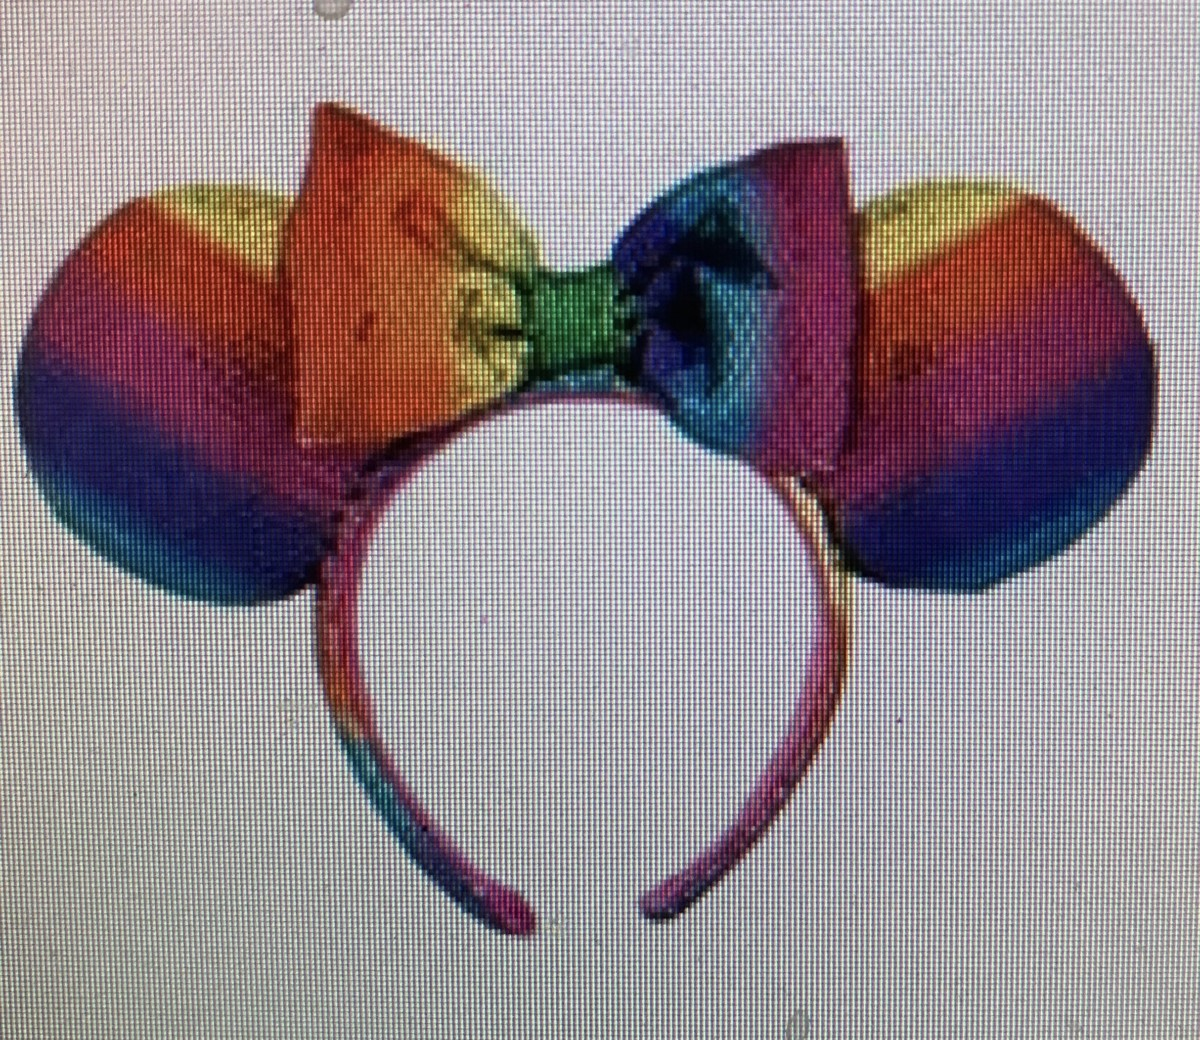 NEW Cinderella Dooney & Bourke Bags Coming to Disney Parks! Rainbow Headband Ears too! #disneystyle 5